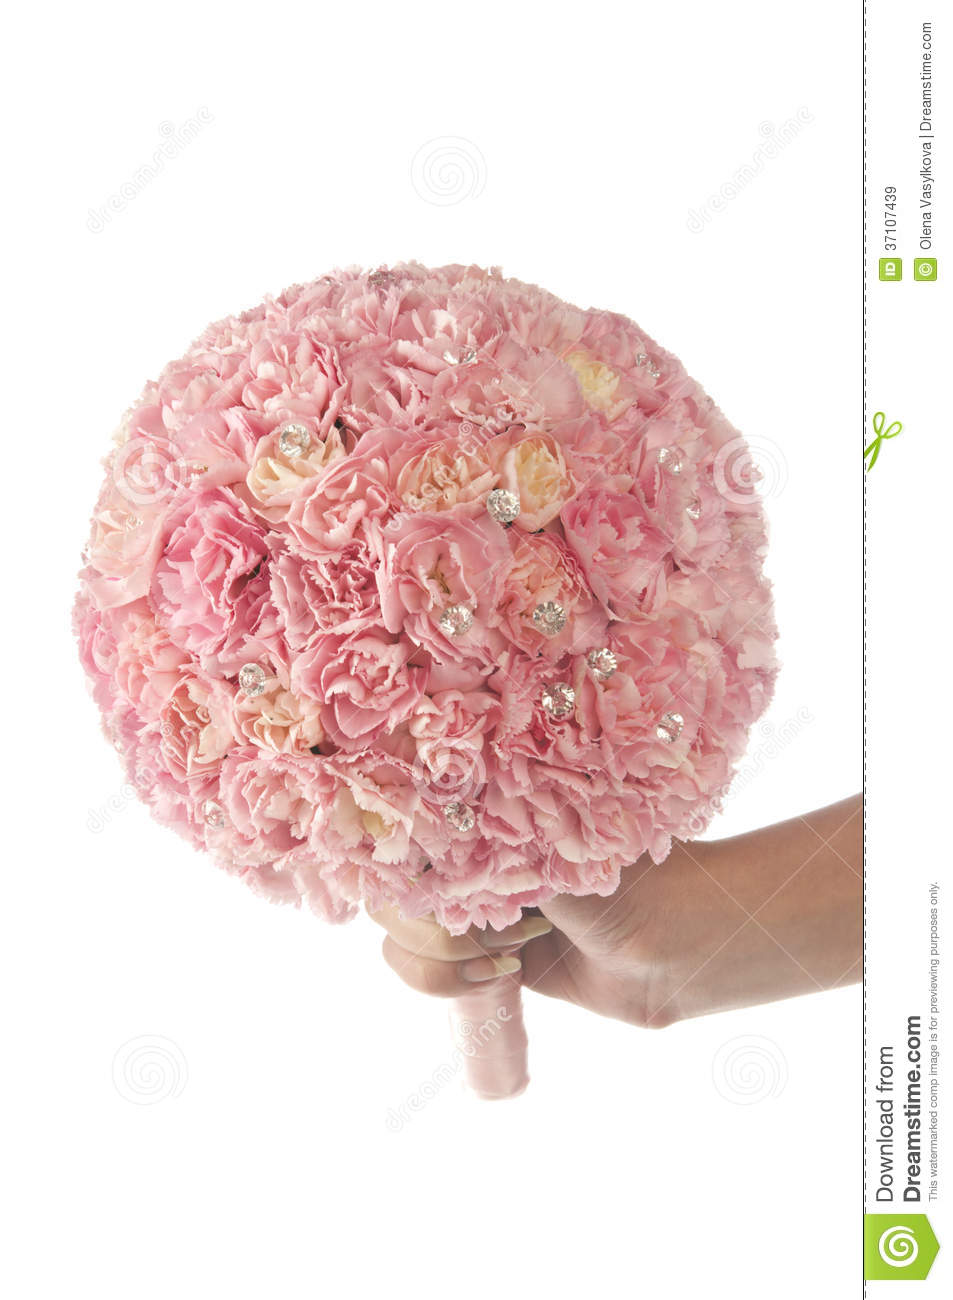 pink carnation wedding bouquet royalty free stock images